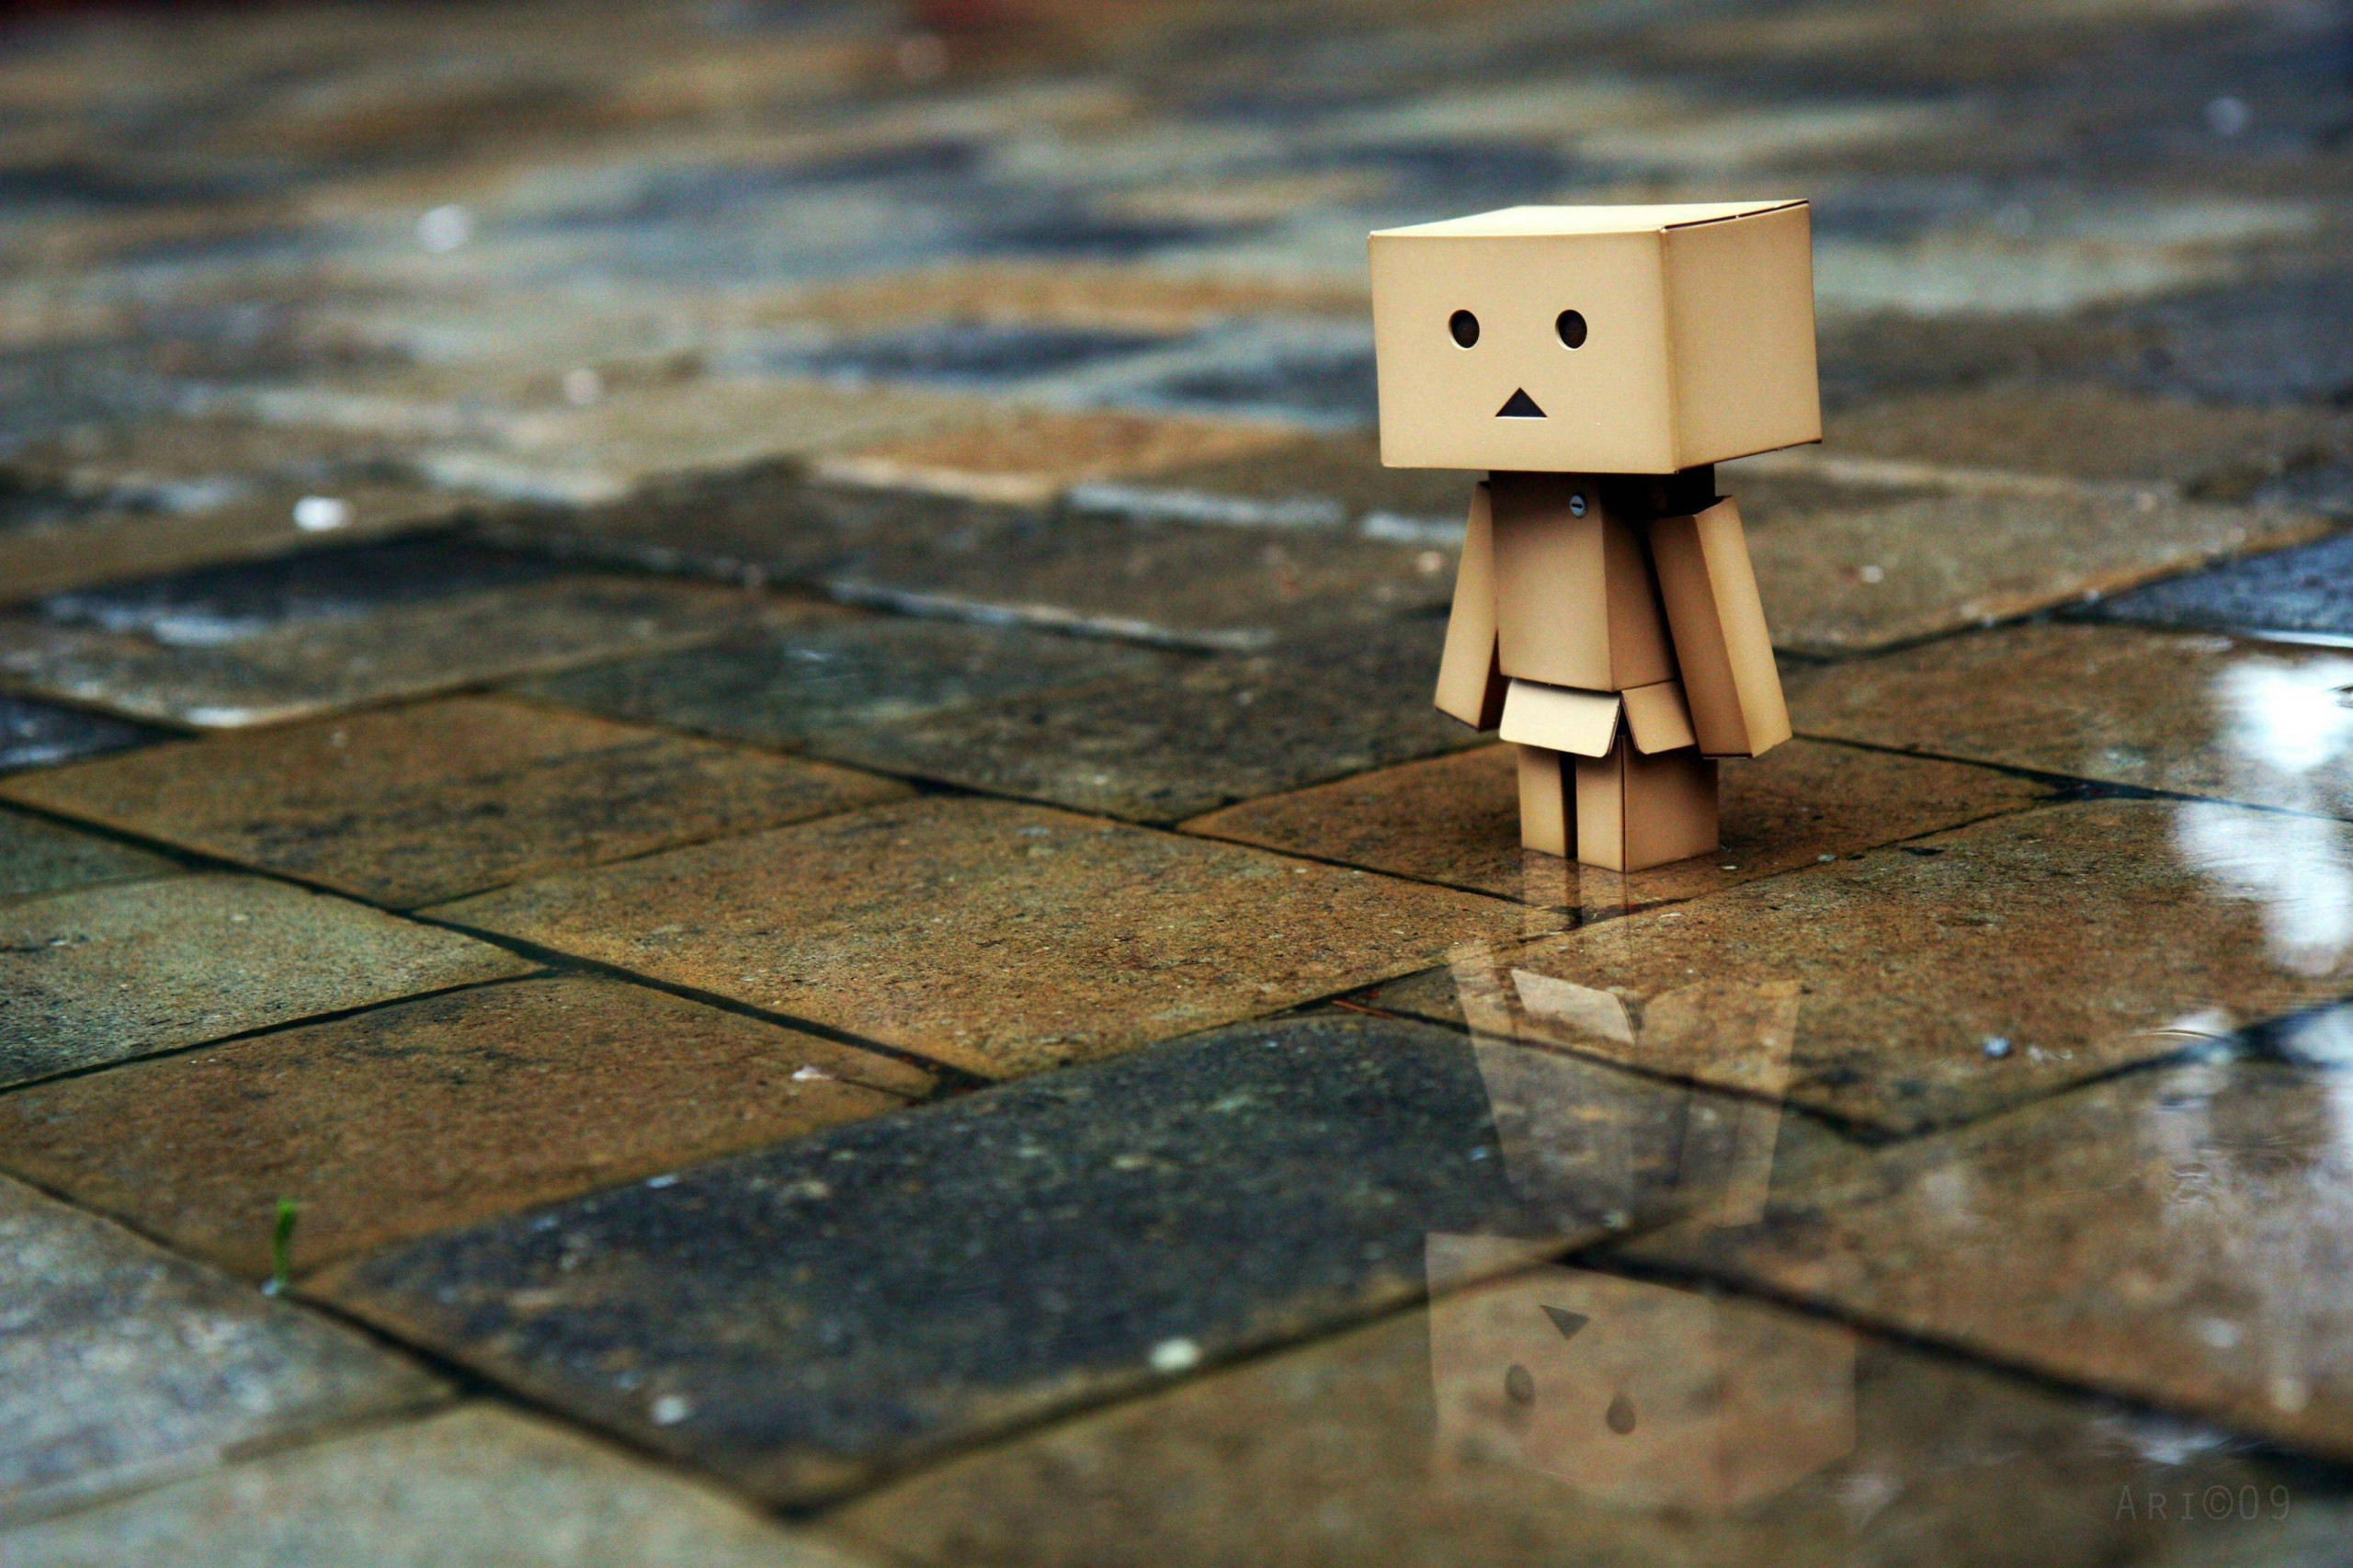 hinh anh danbo buon 19 scaled